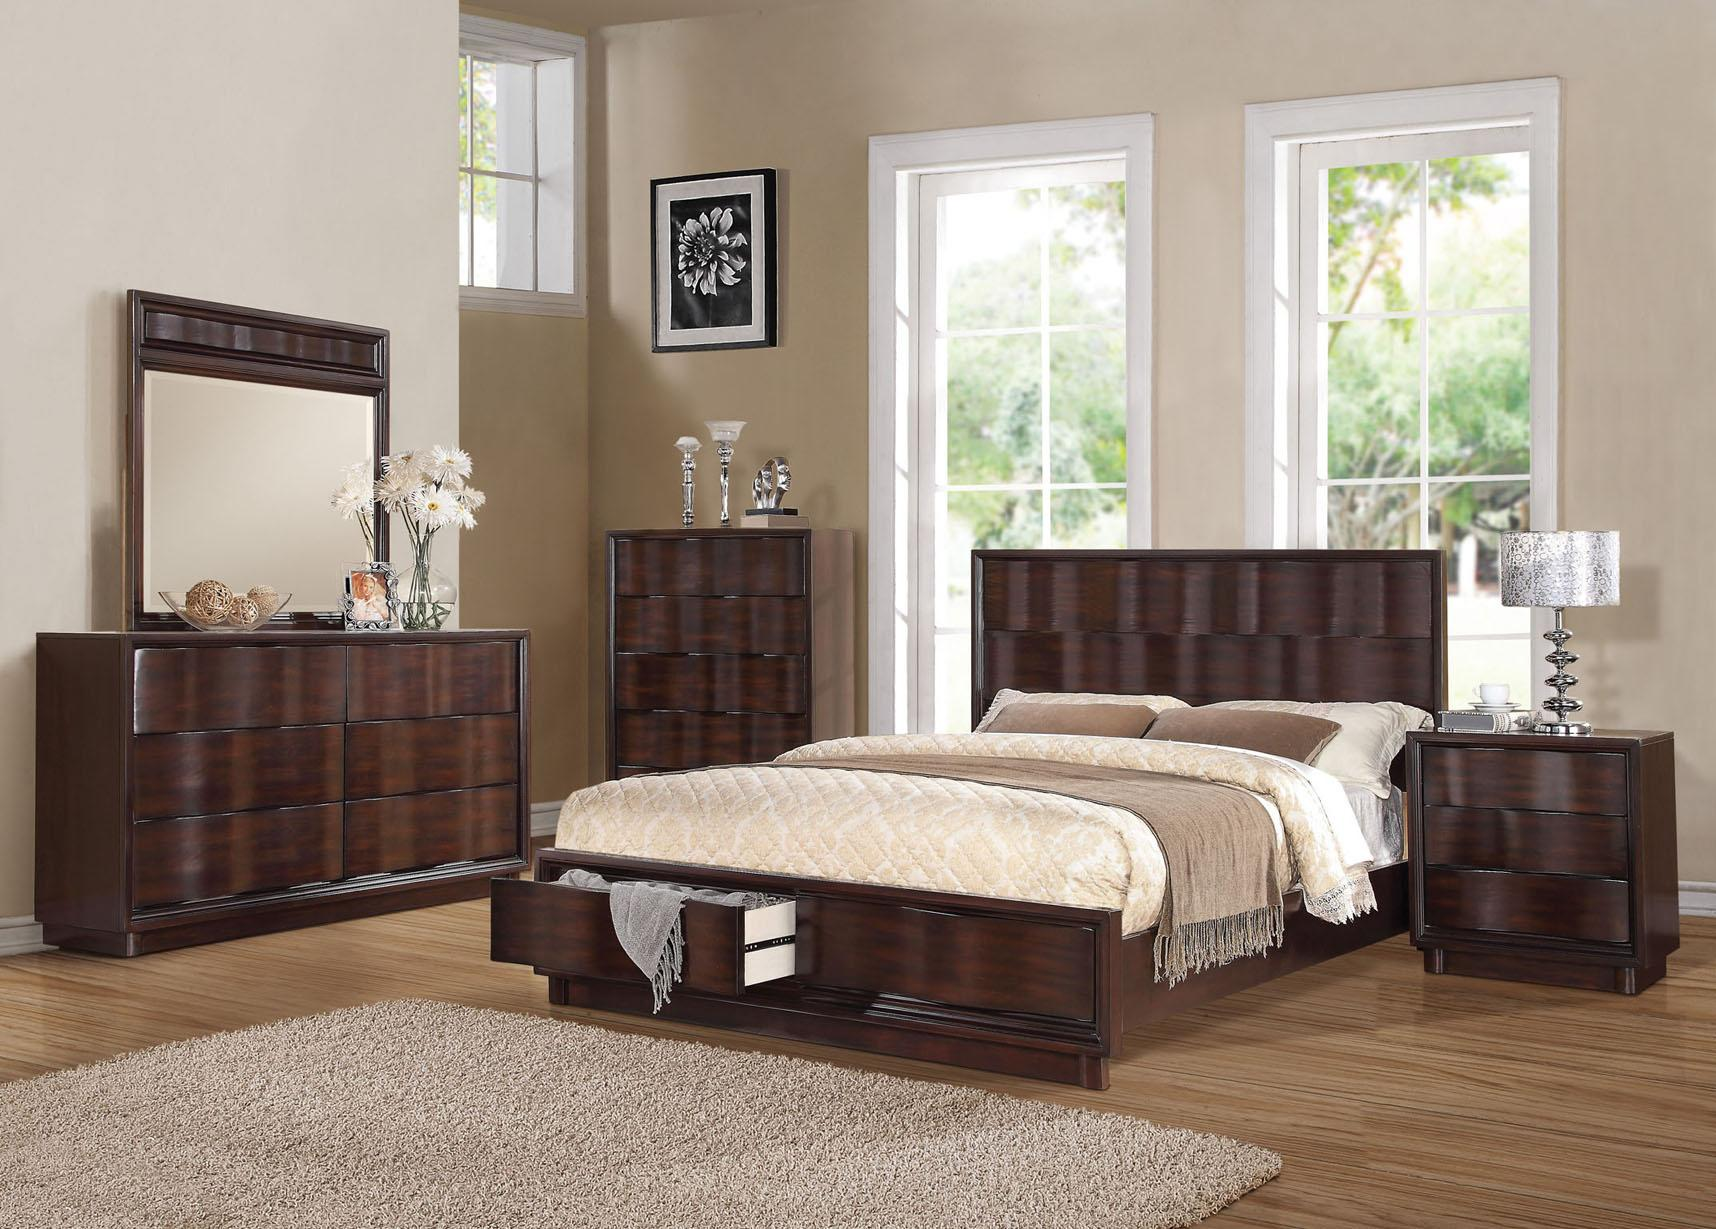 Acme Furniture Travell King Bedroom Group - Item Number: 2052 K Bedroom Group